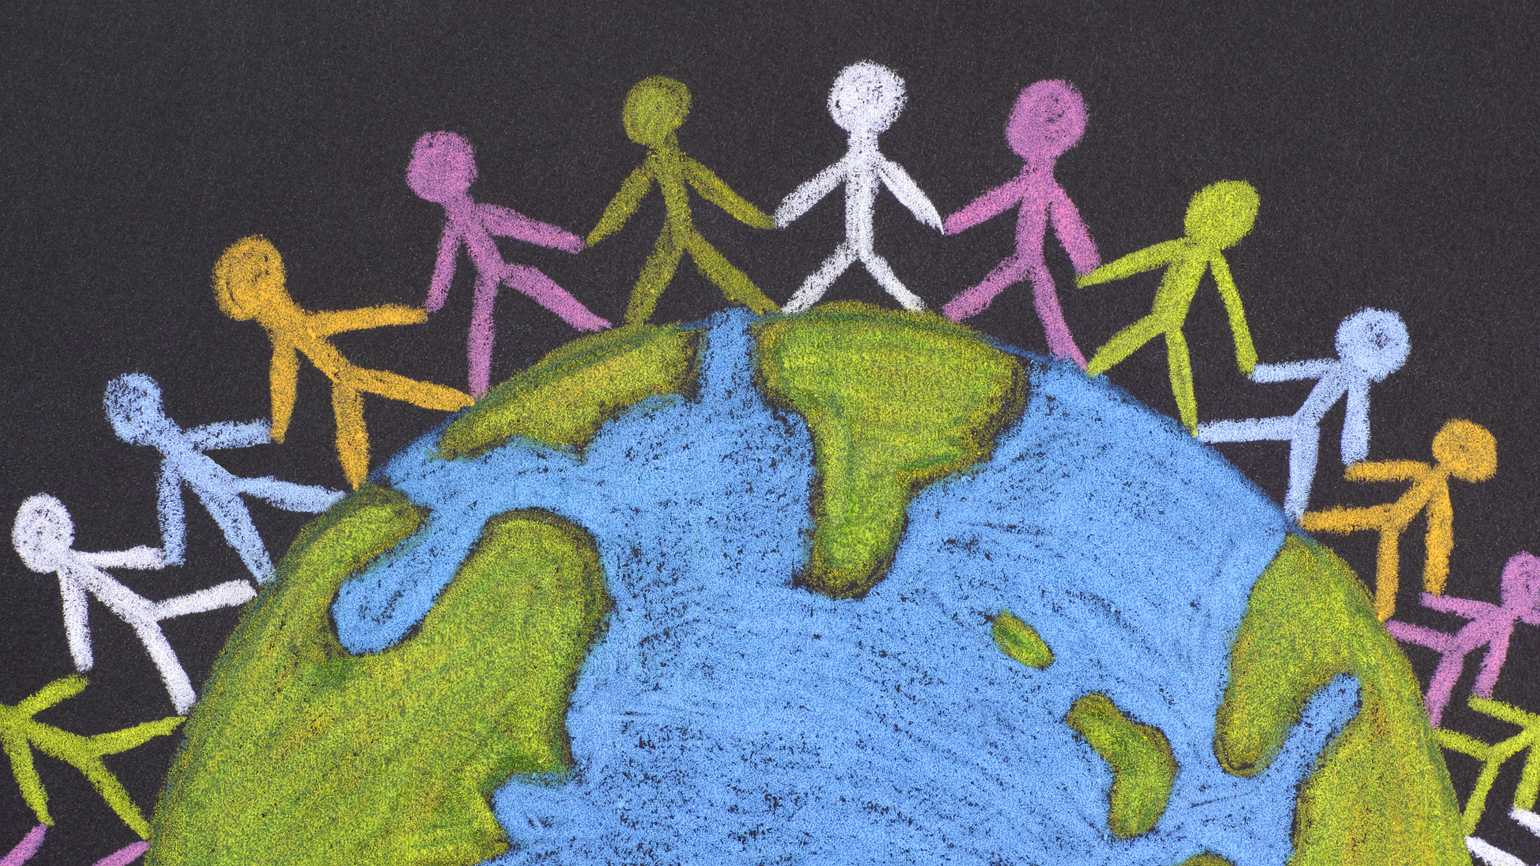 Group of people around the world.